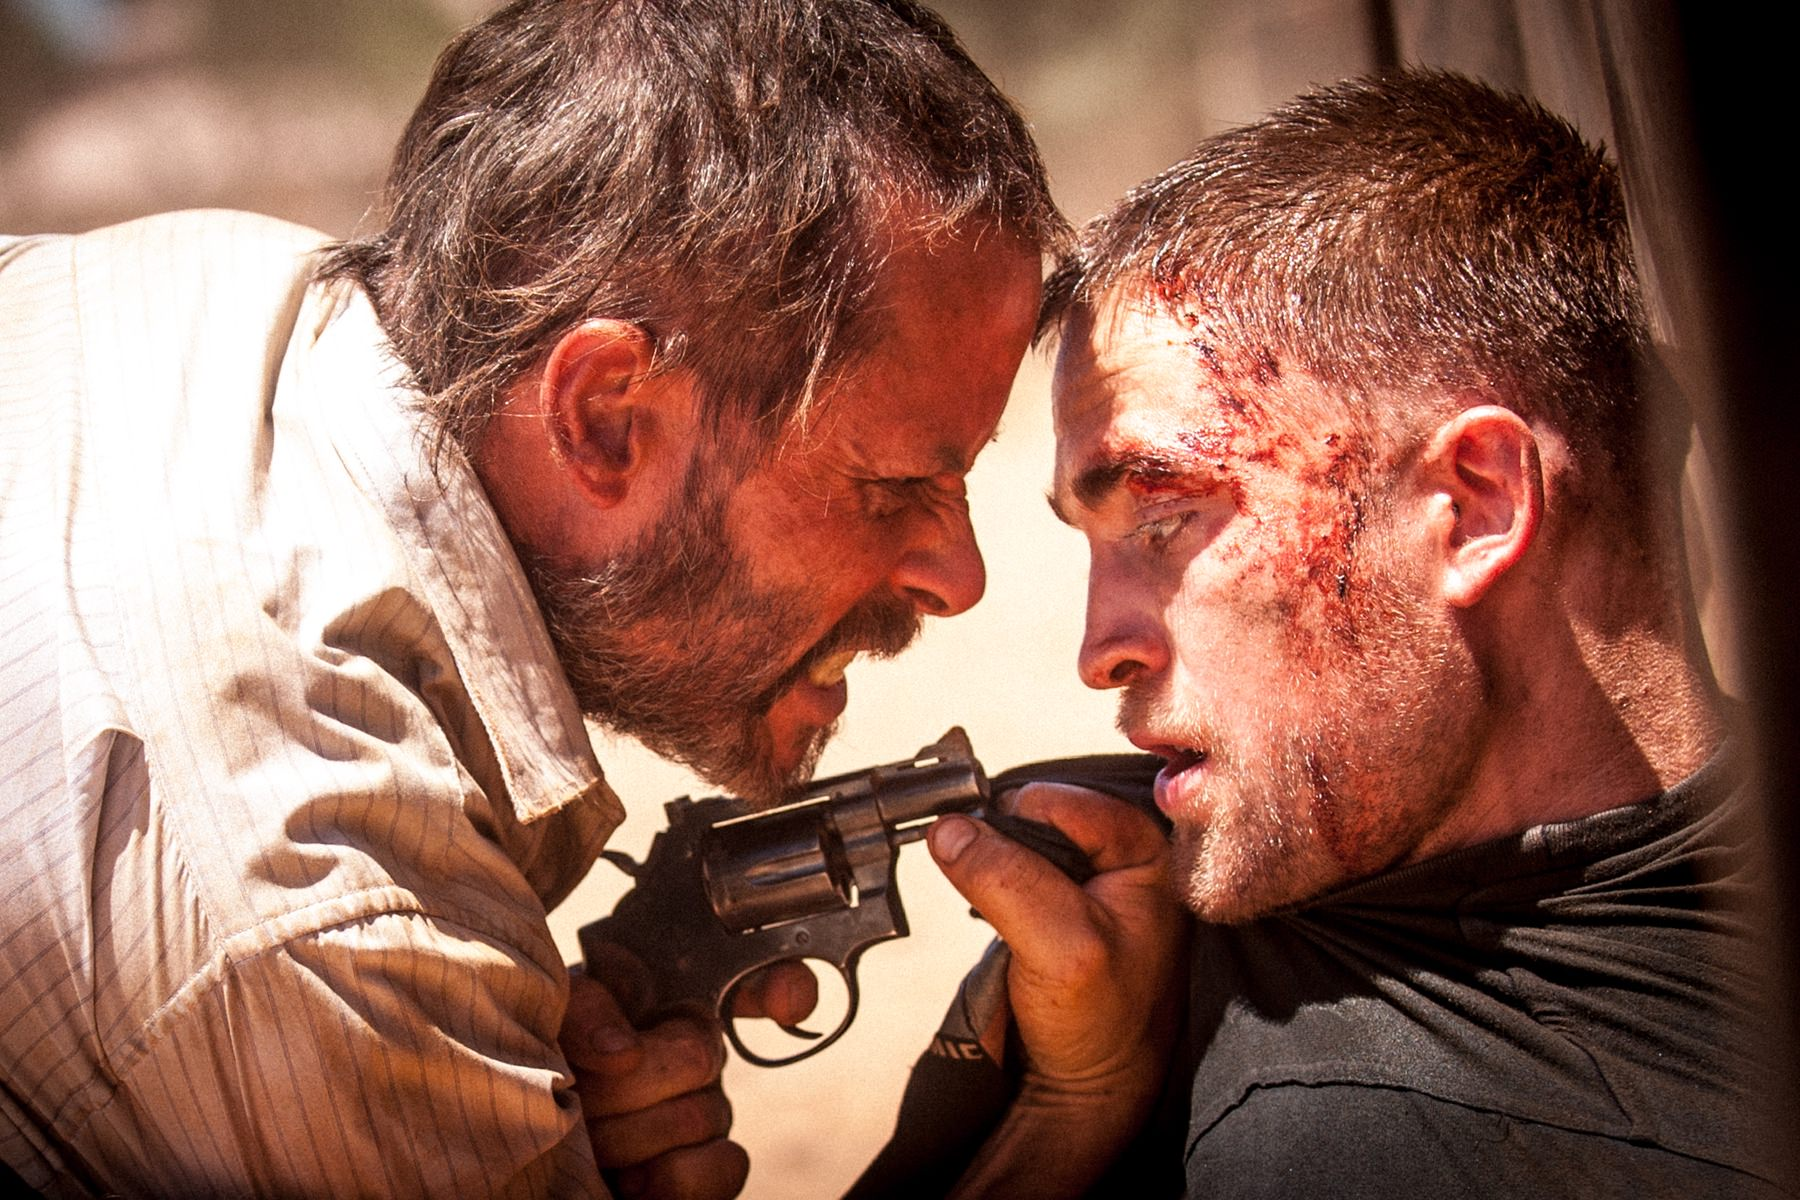 The rover guy pearce robert pattinson michod